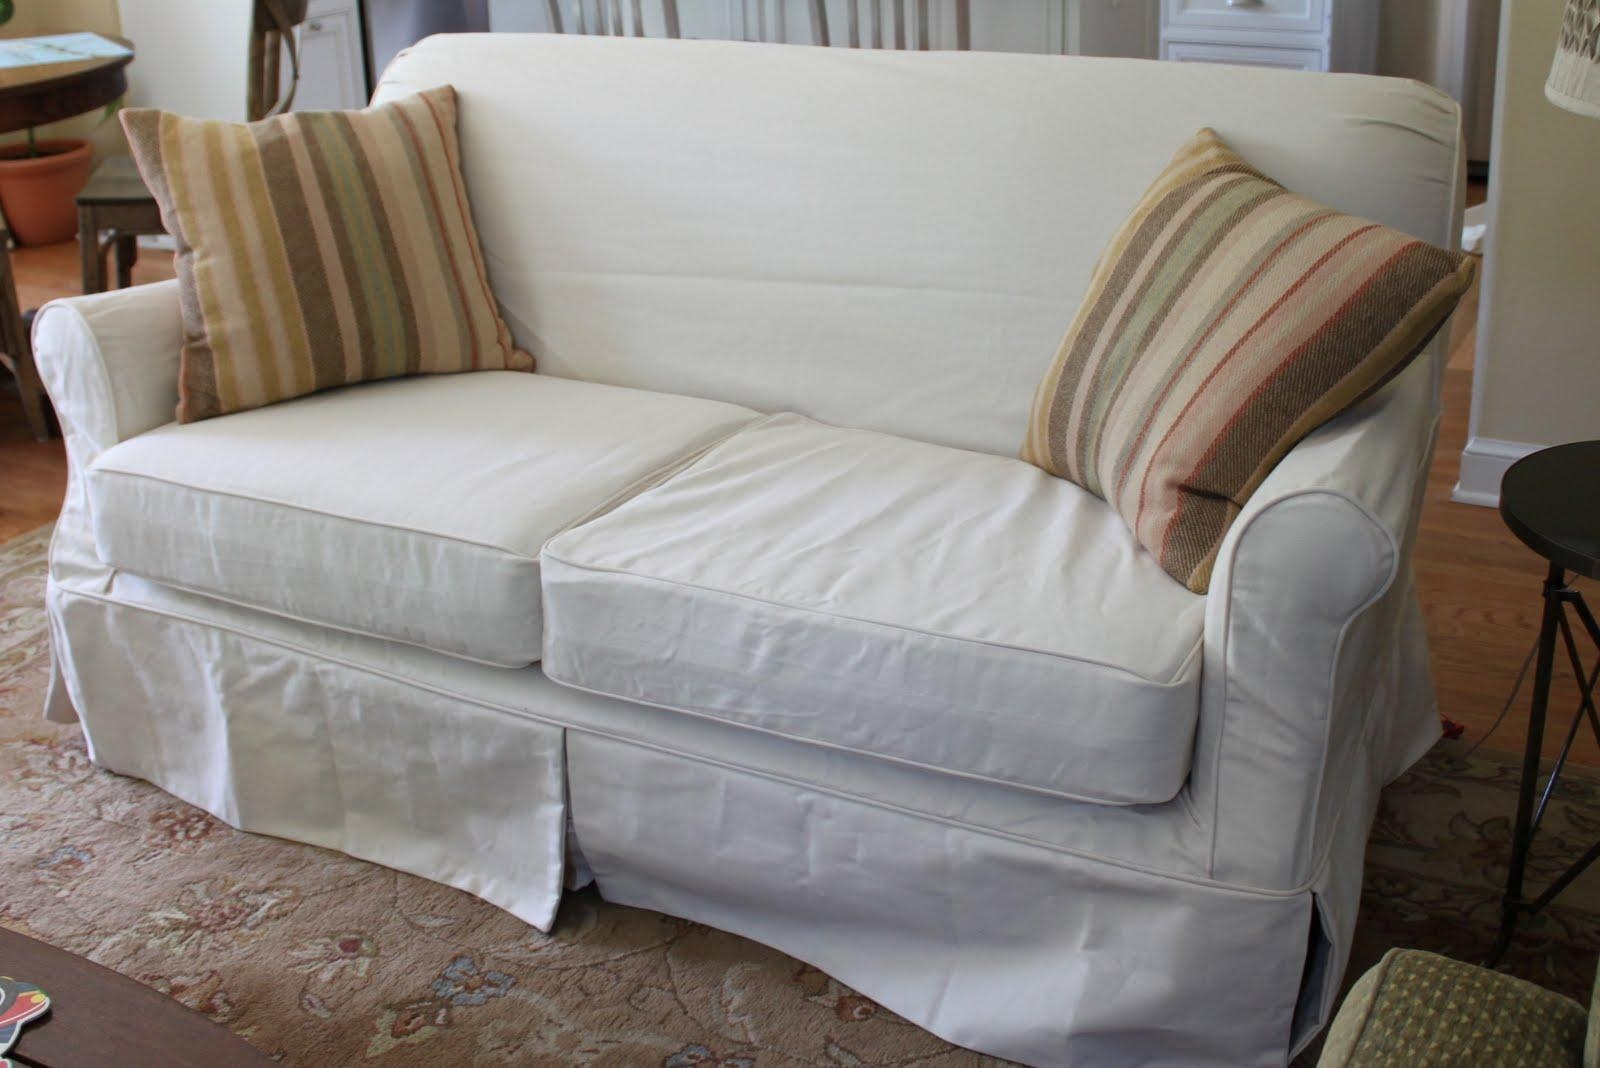 Slipcover Sleeper Sofa With Inspiration Hd Gallery 17909 | Kengire Within Sleeper Sofa Slipcovers (Image 17 of 20)